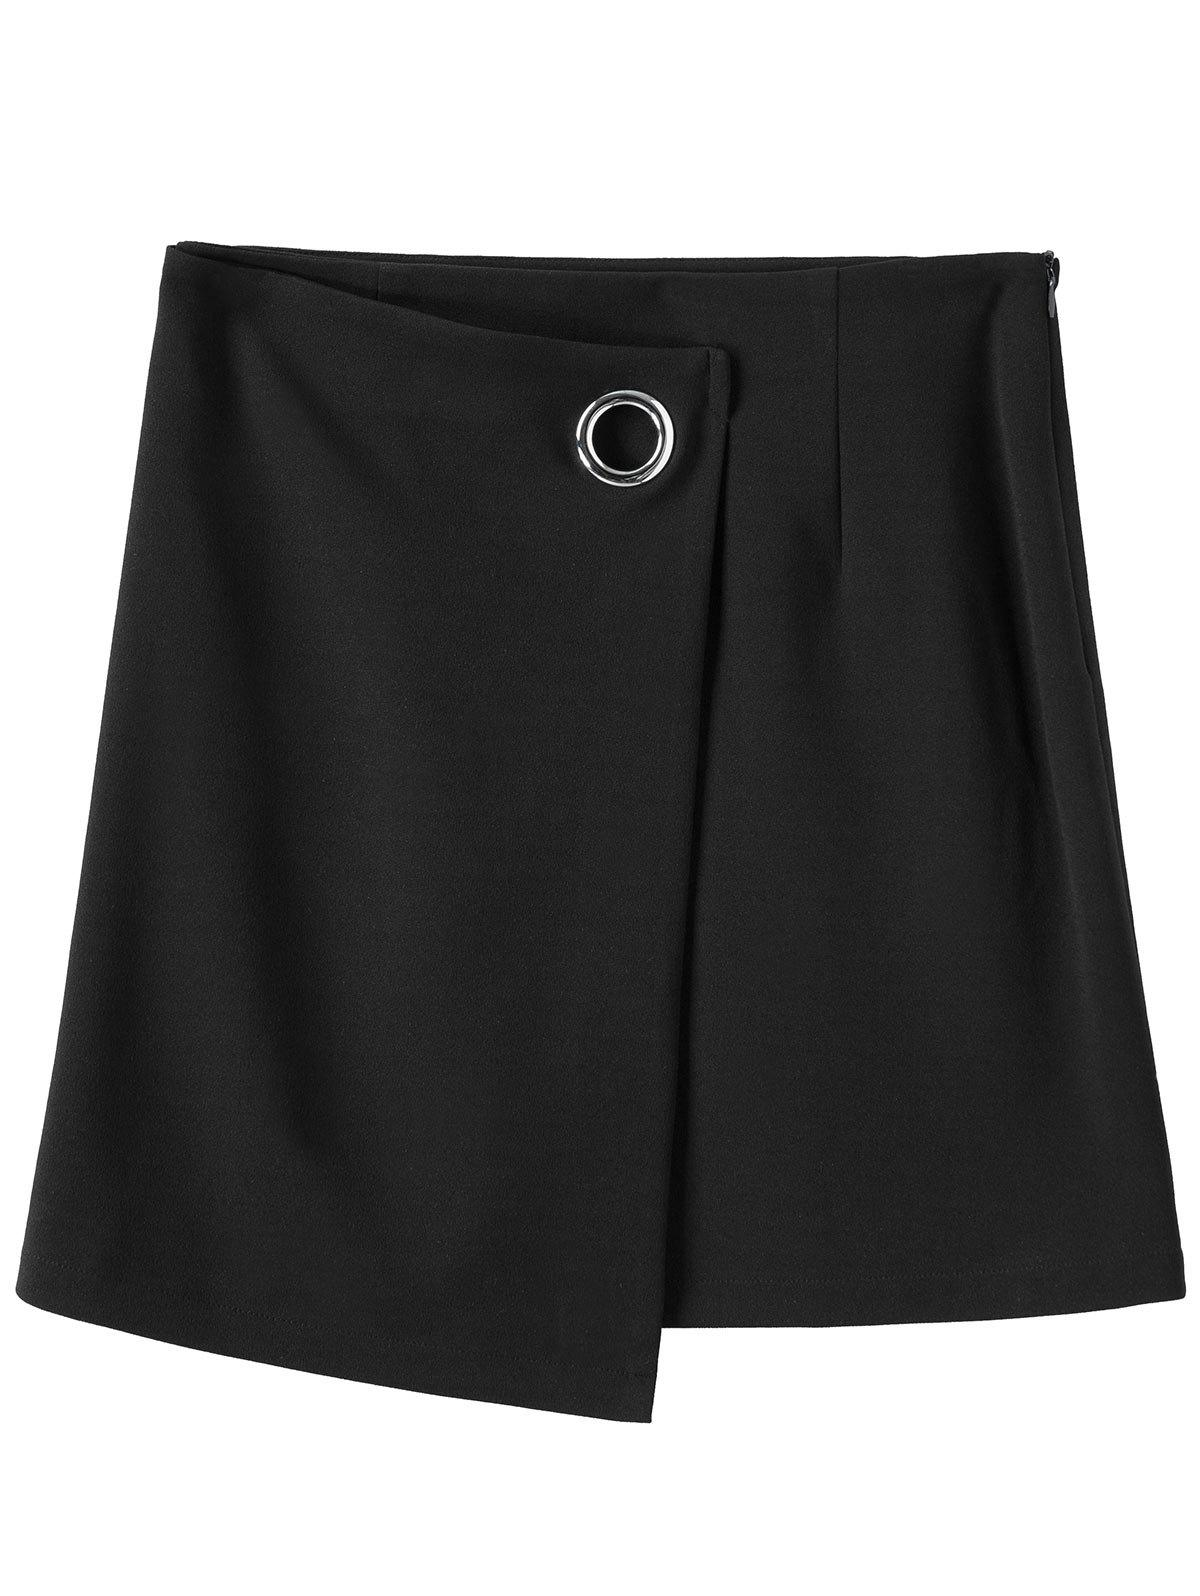 Chic Mini Plus Size Zippered Skirt